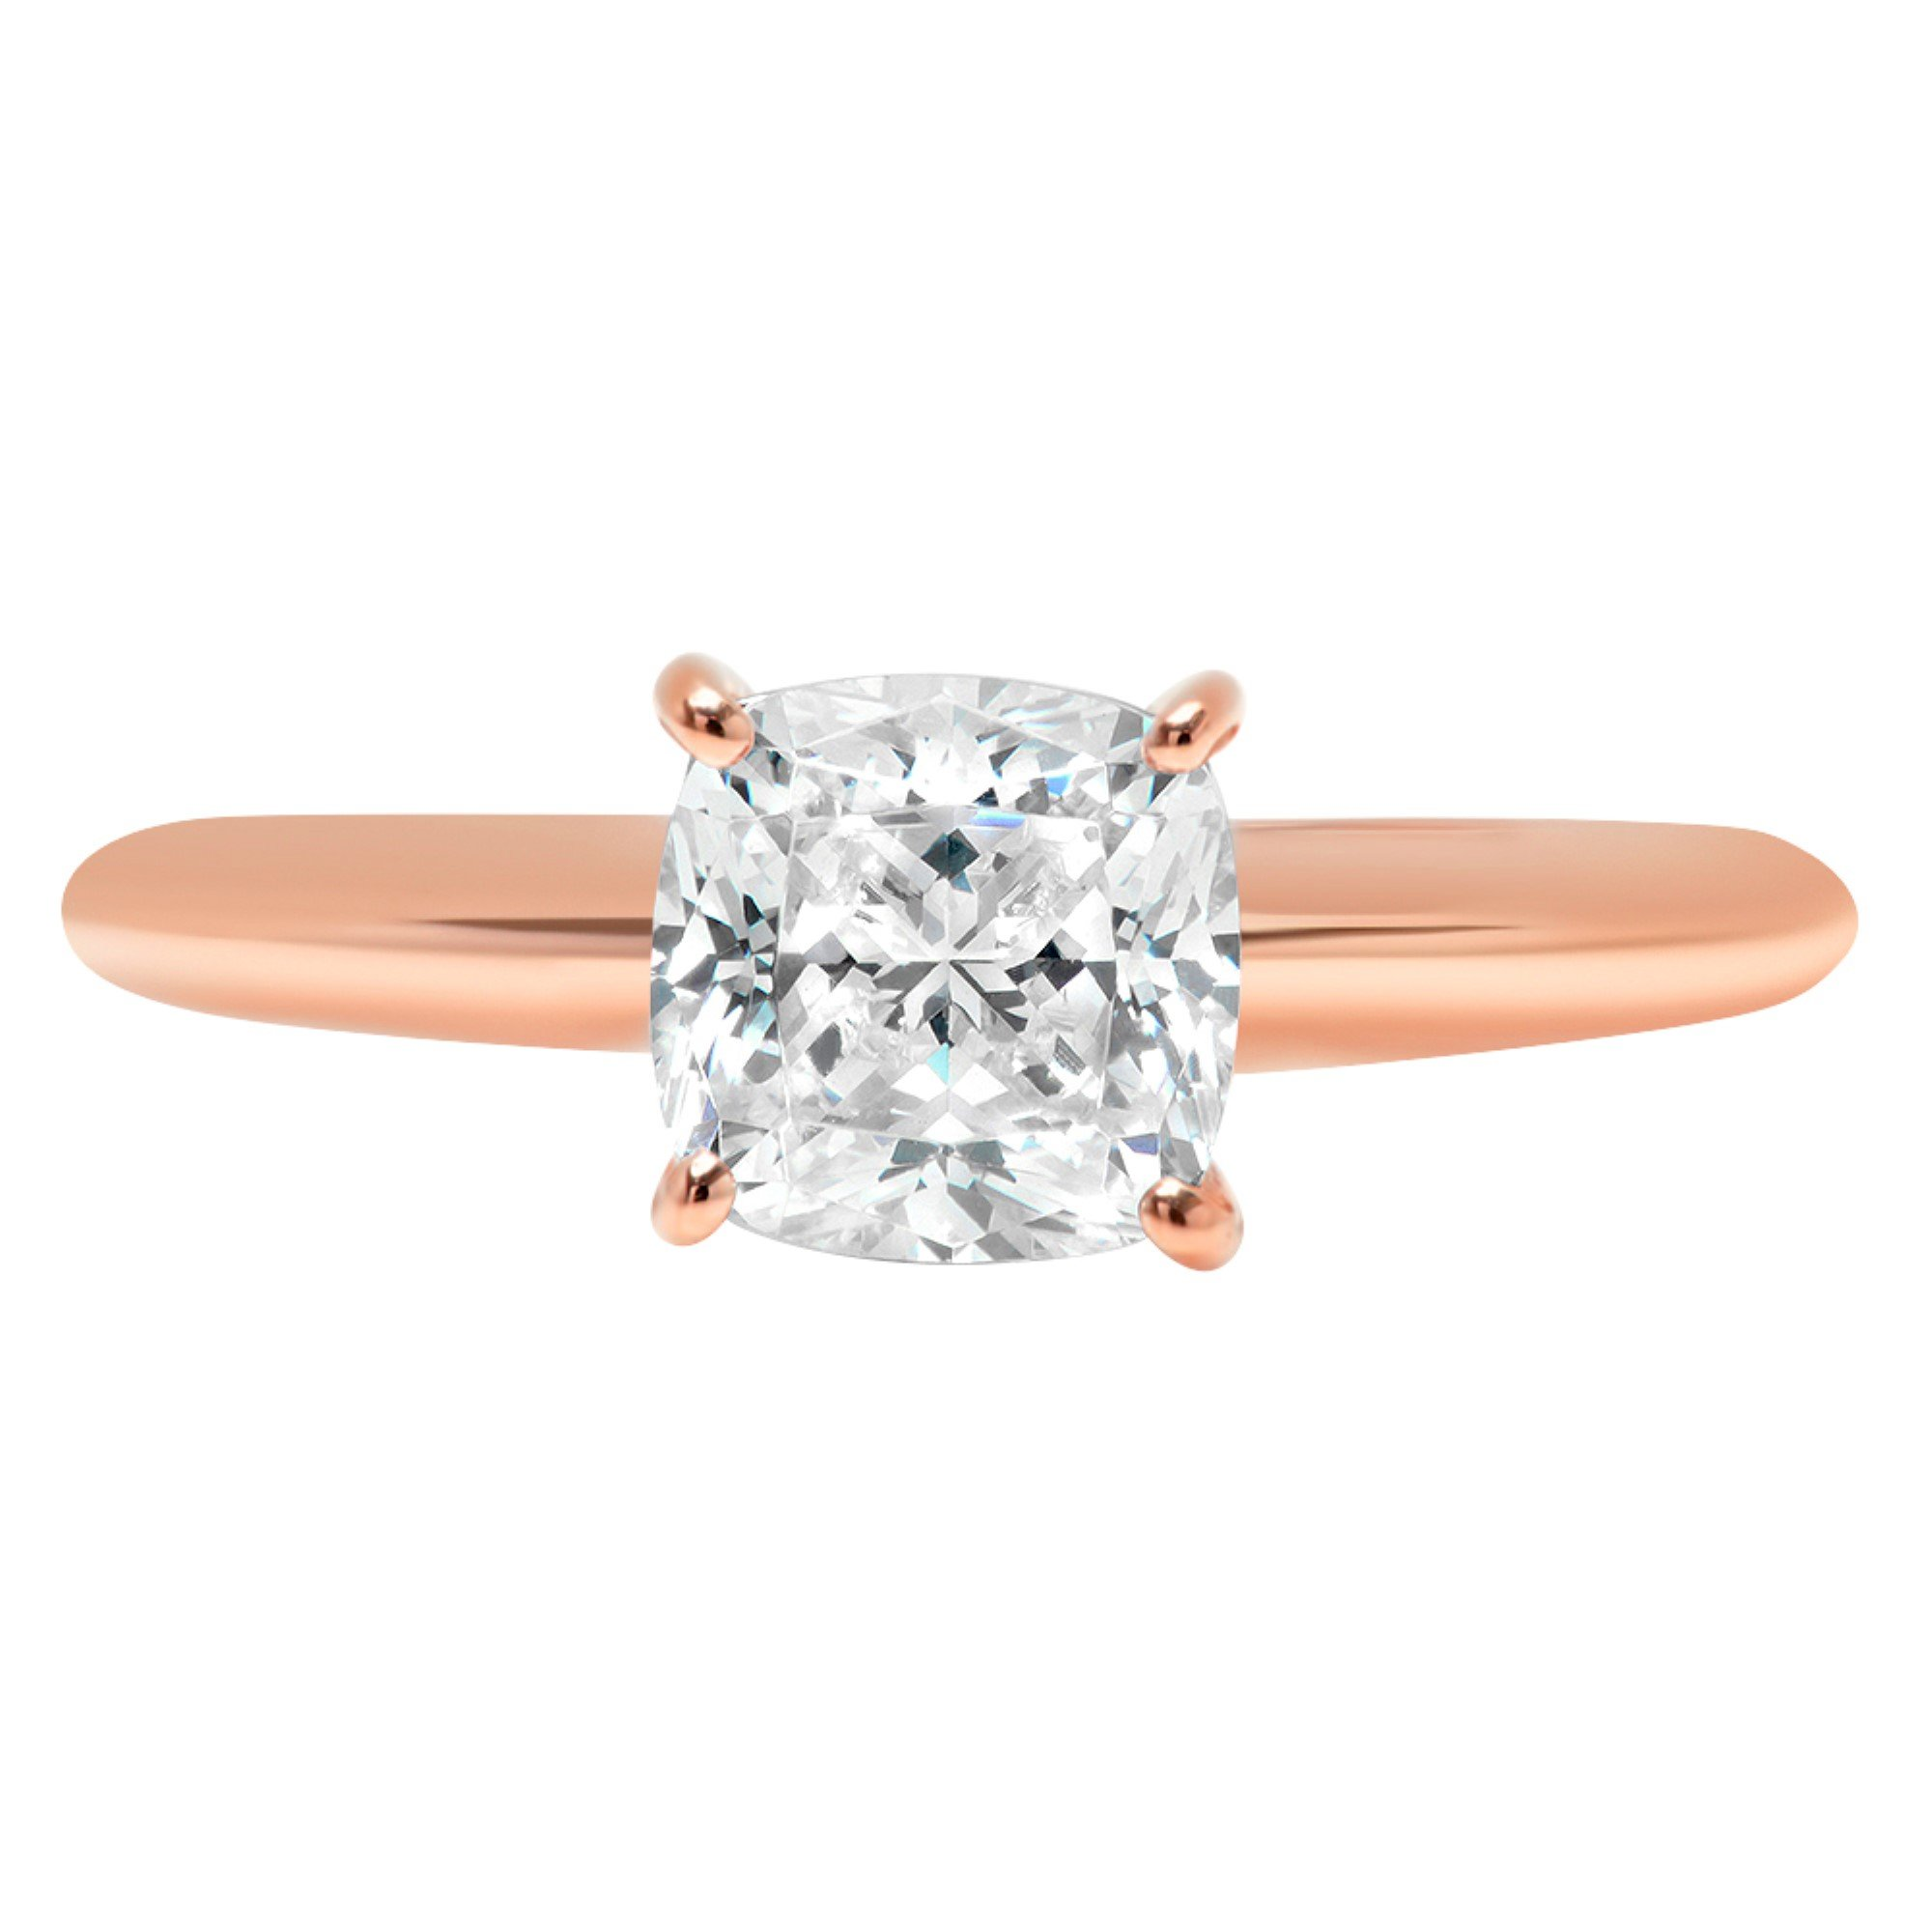 Cushion Brilliant Cut Classic Solitaire Designer Wedding Bridal Statement Anniversary Engagement Promise Ring Solid 14k Rose Gold, 1.7ct, 7.5